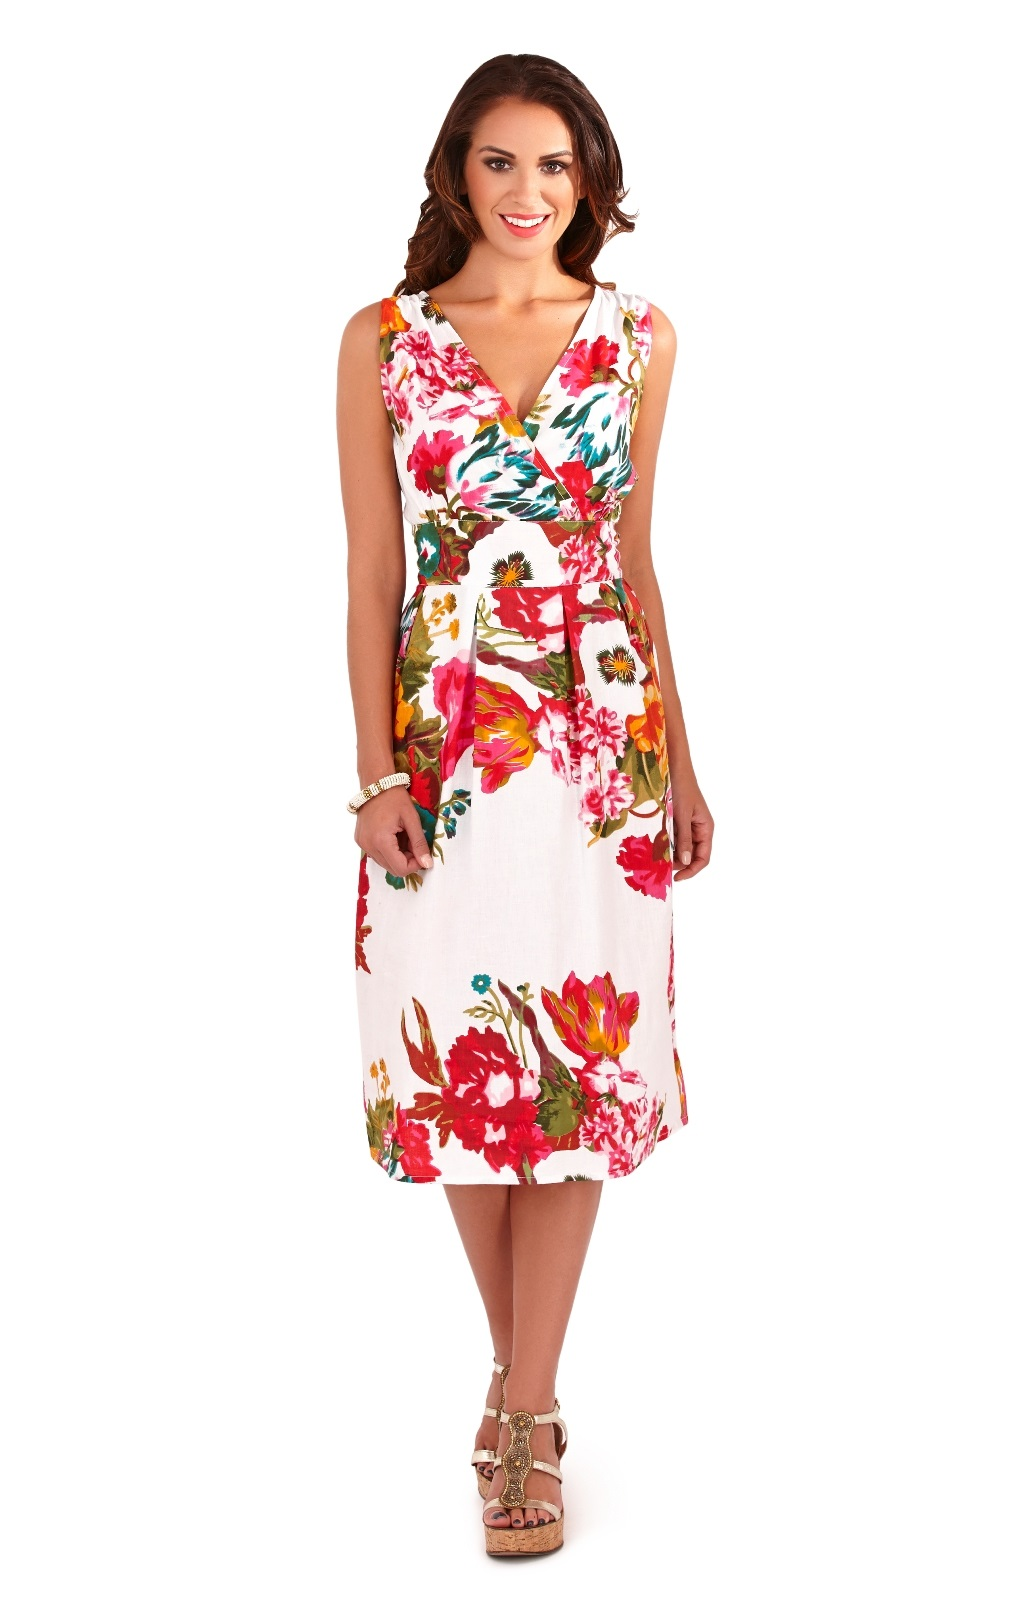 THE FLORAL PRINT DRESS, A FLAWLESS, FEMININE FAVORITE. When you think of ModCloth, of course floral dresses come to mind! There's something incredibly special about the way a fresh botanical print can make you feel, regardless of your personal style preferences.